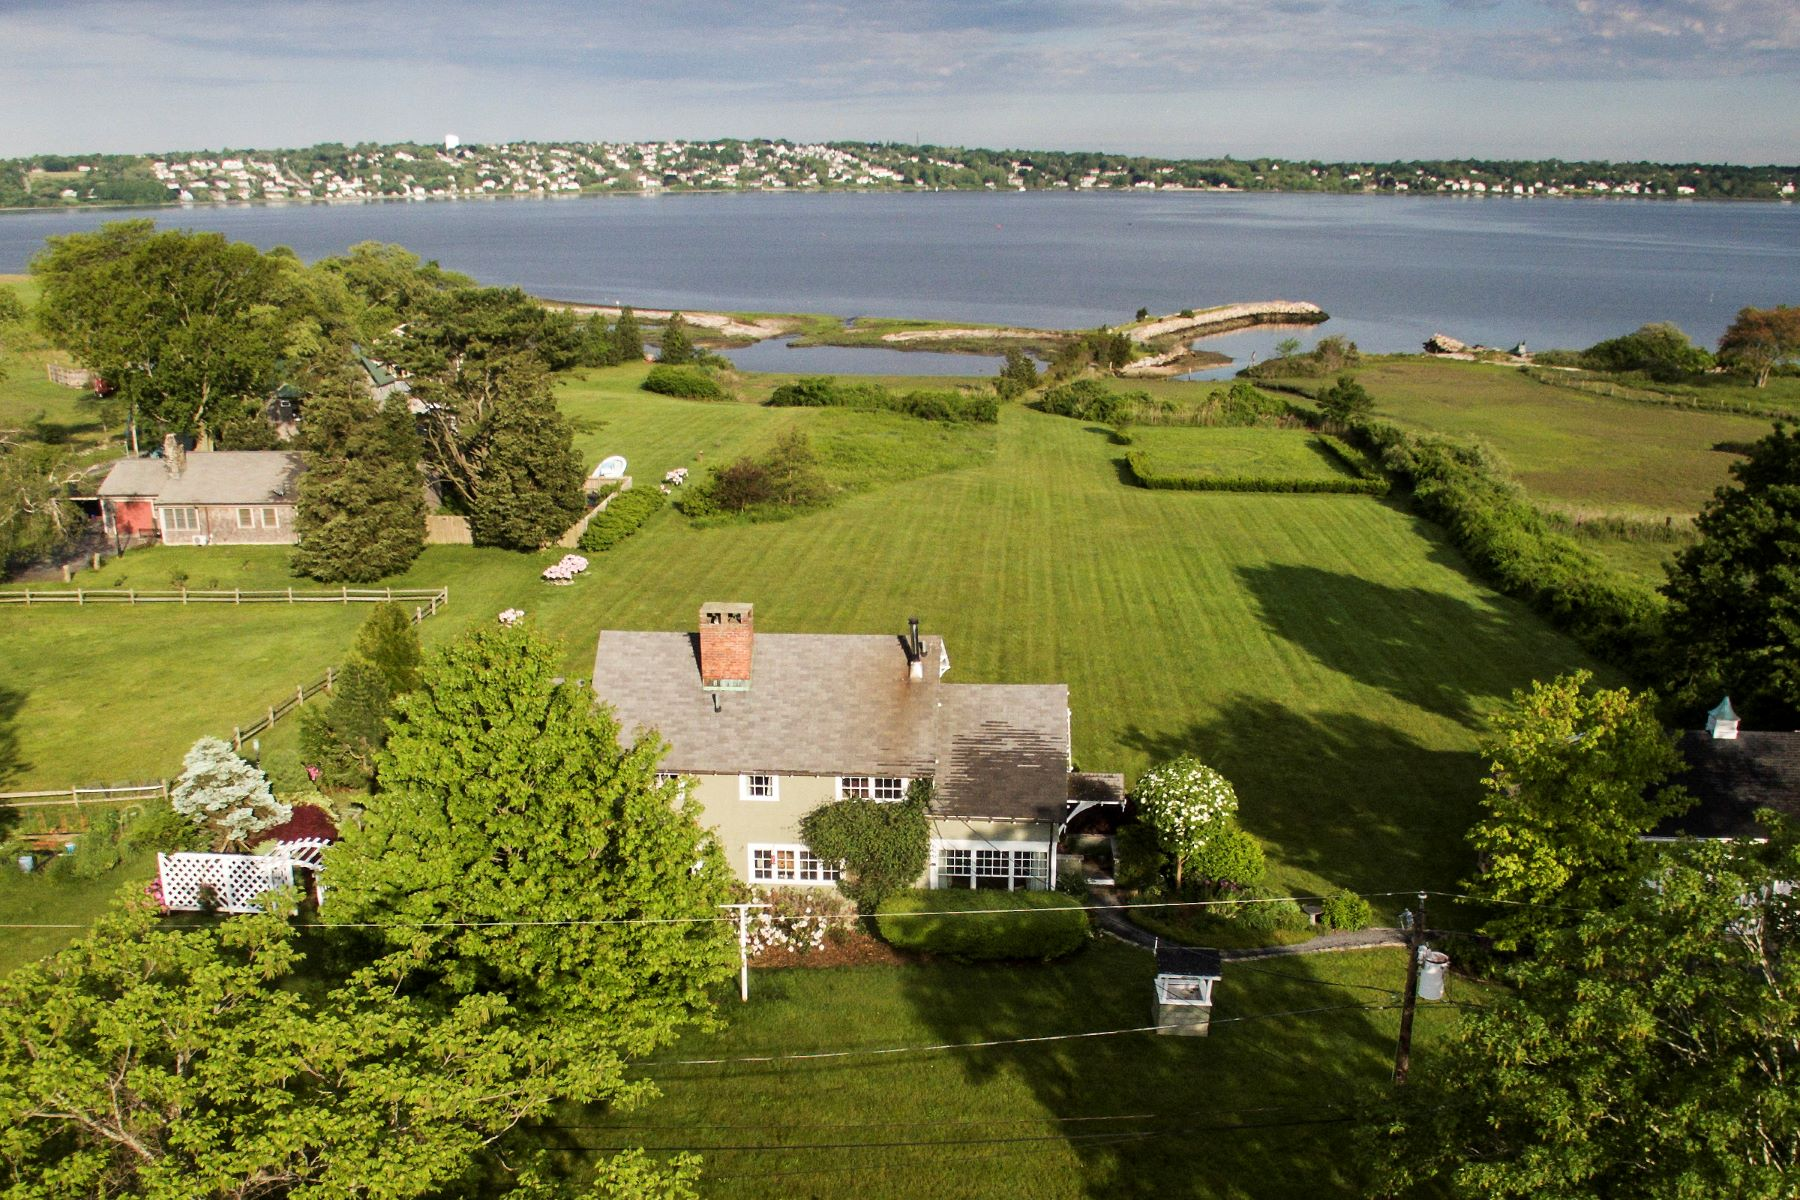 Single Family Home for Sale at Boater's Paradise - Sakonnet Waterfront 451 Seapowet Avenue Tiverton, Rhode Island 02878 United States